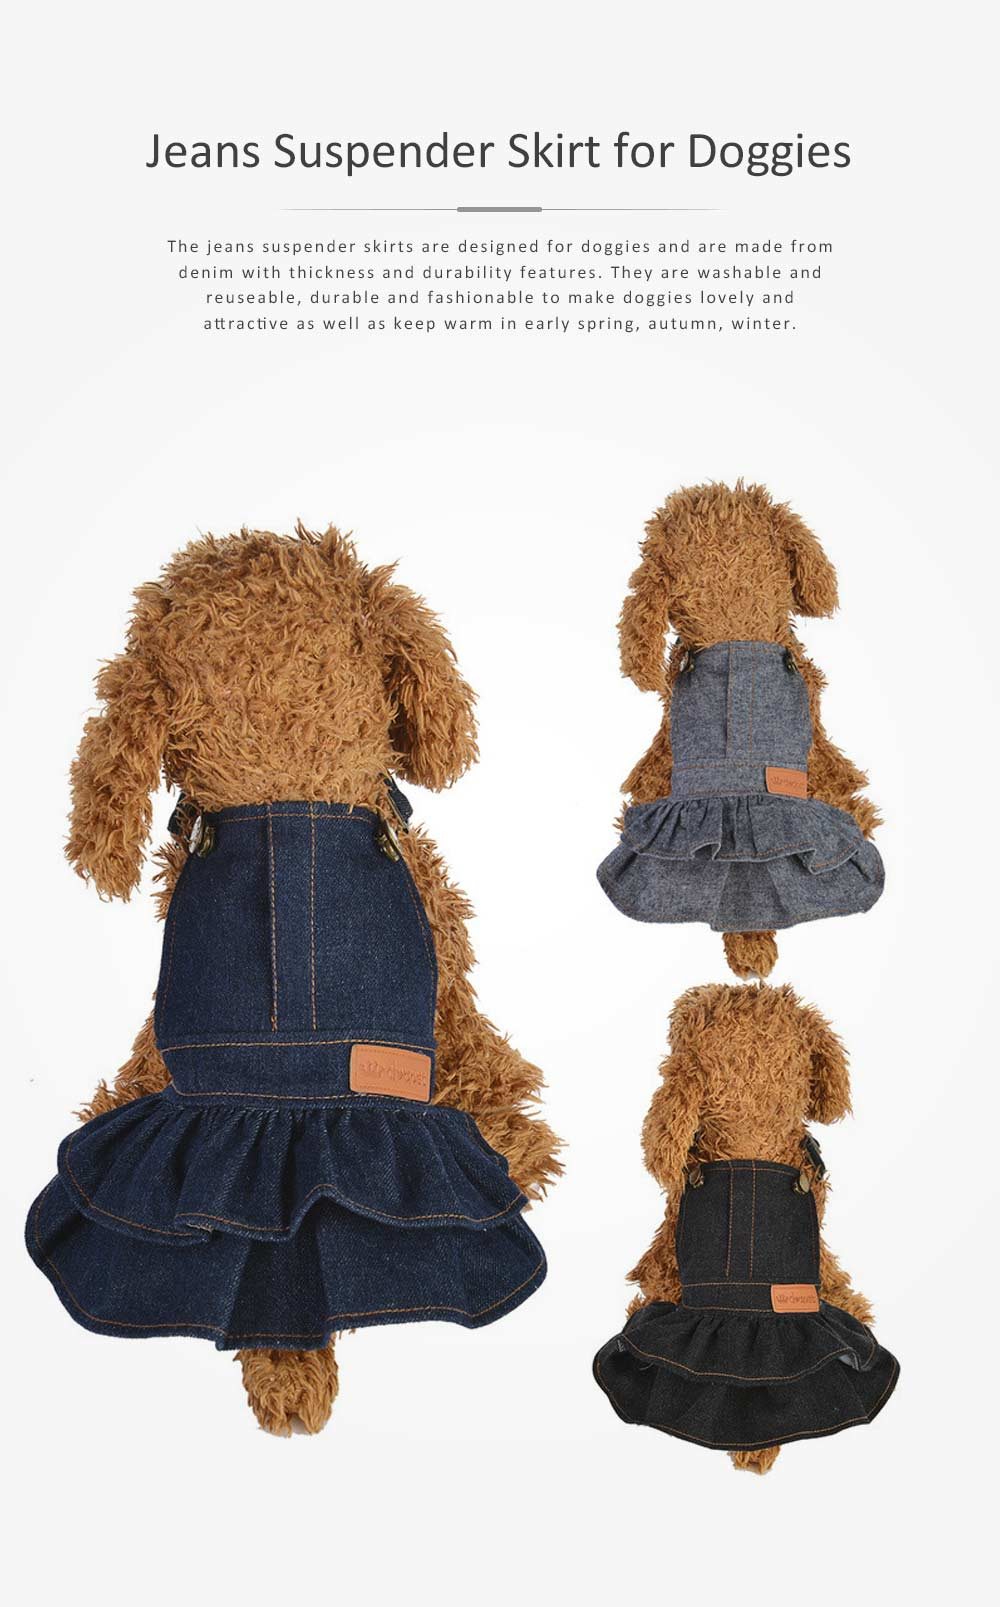 Jeans Suspender Skirt for Dogs New-style Pet Clothes in 2019 Used During Autumn and Winter Dog Clothes 0